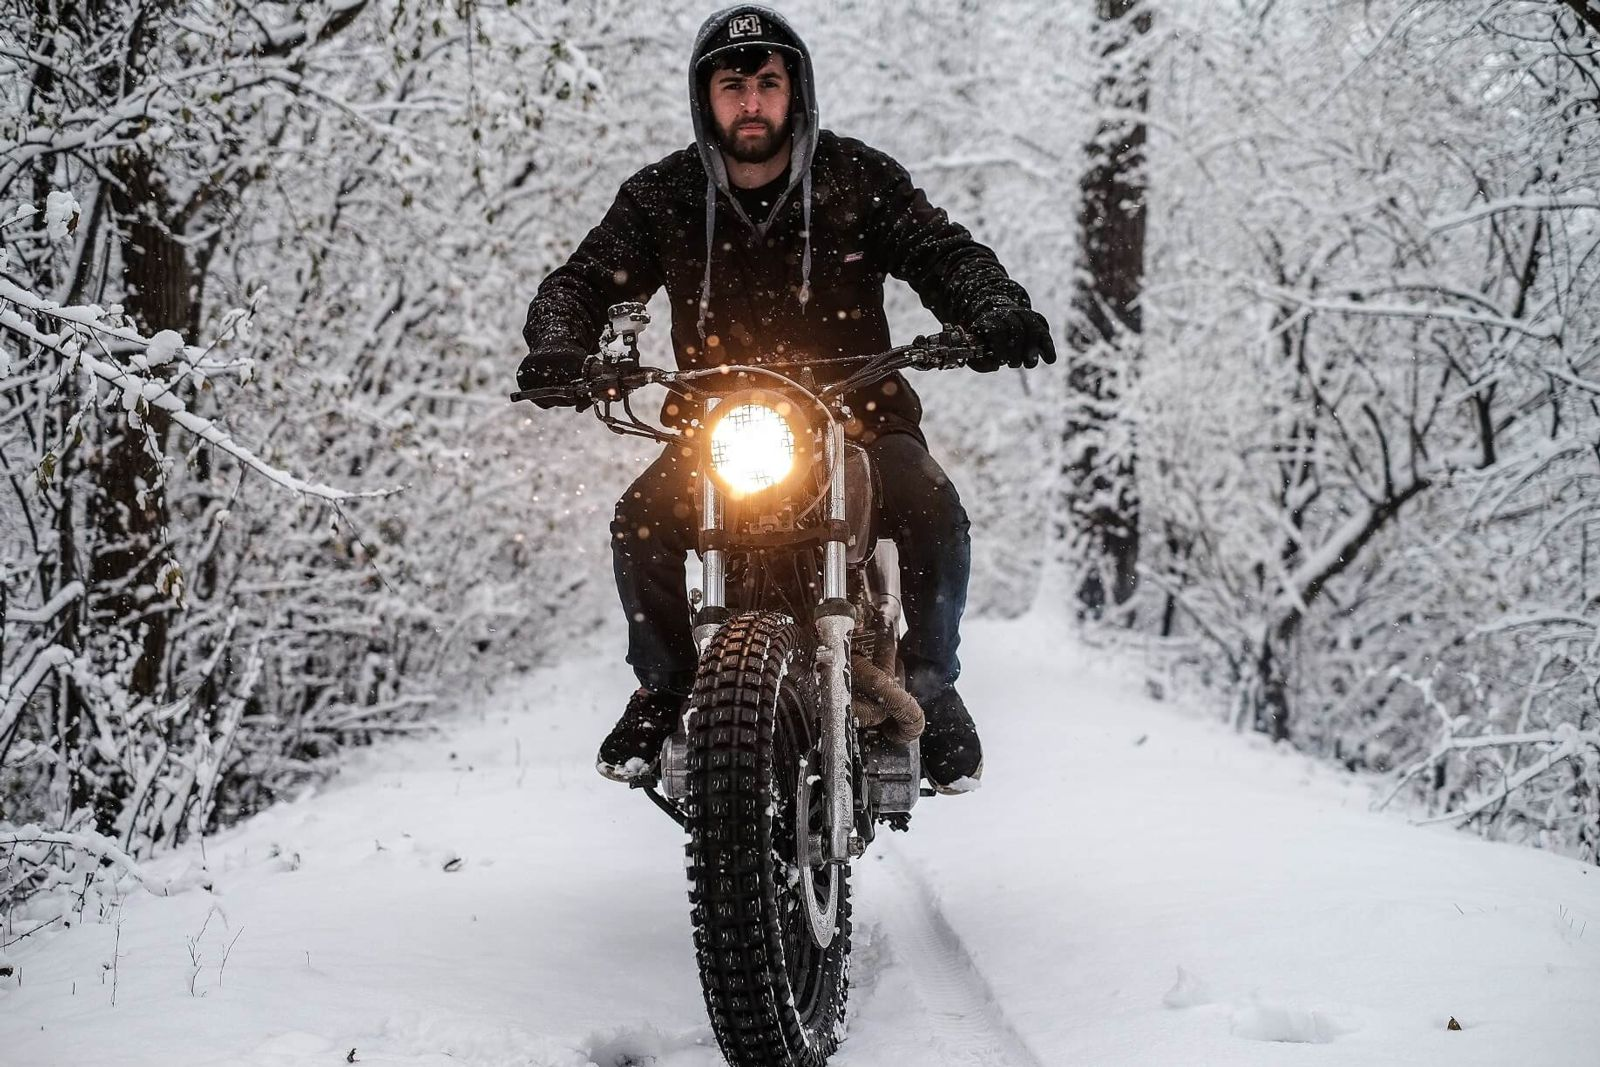 Motorcyclist riding bike on snowy country road